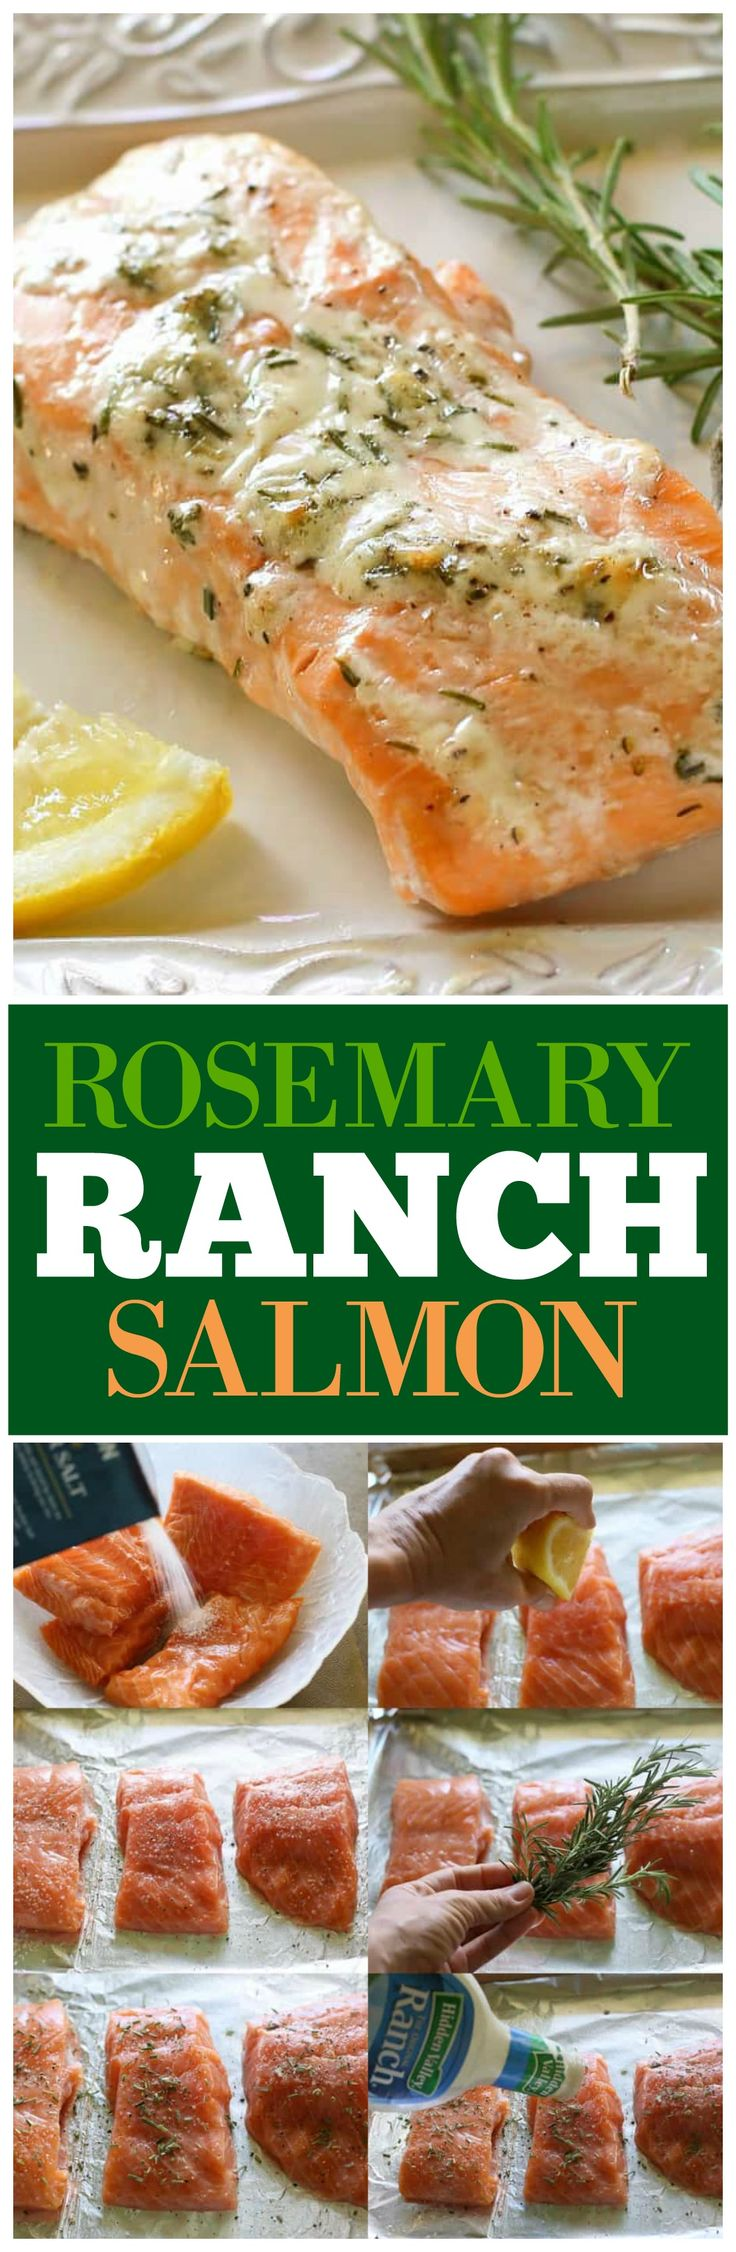 This Rosemary Ranch Salmon is delicious! The combo of the flavors creates a tender and savory sauce that is out of this world.  If you're looking for a baked salmon recipe, this one is so easy and so delicious!